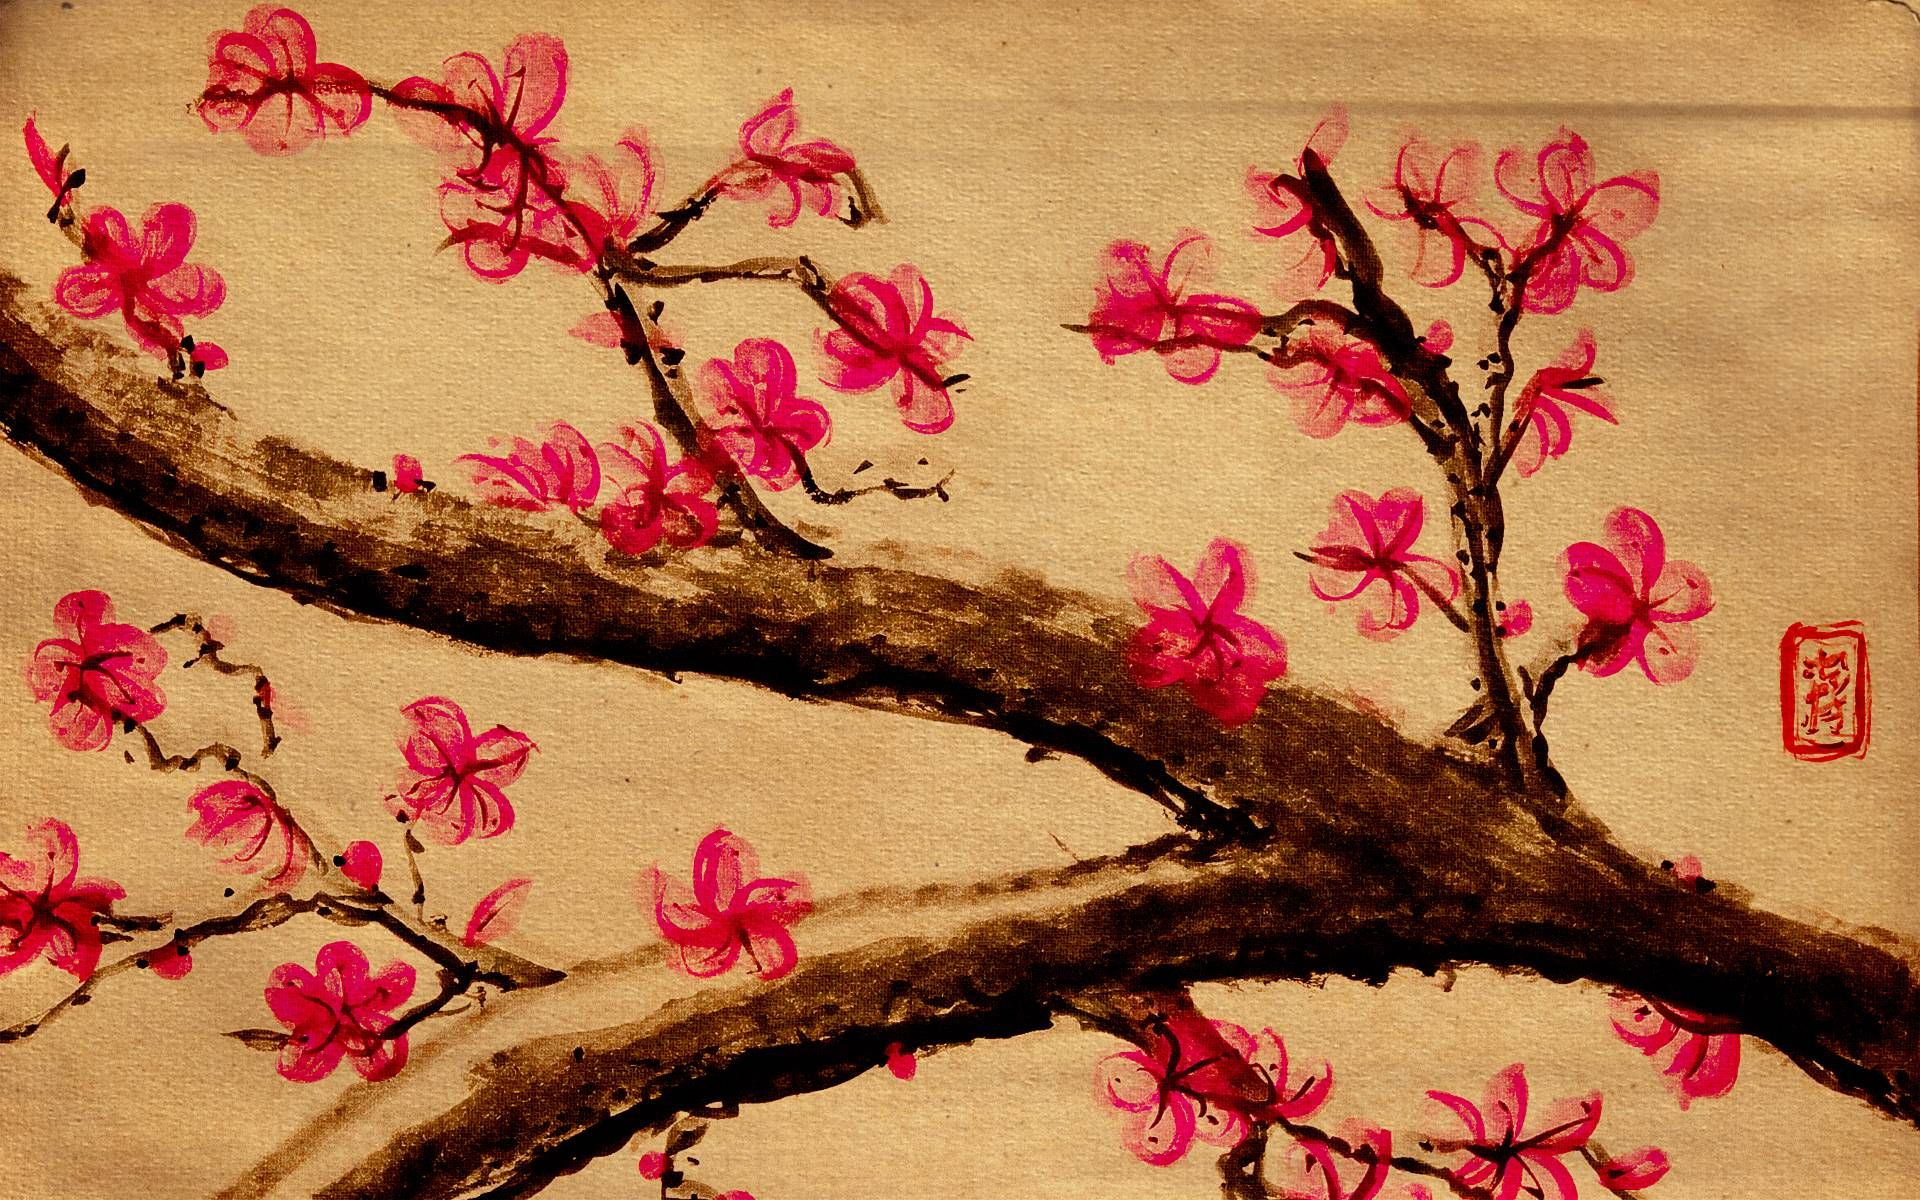 The Cherry Blossoms Symbolize The Transience Of Life Because Of